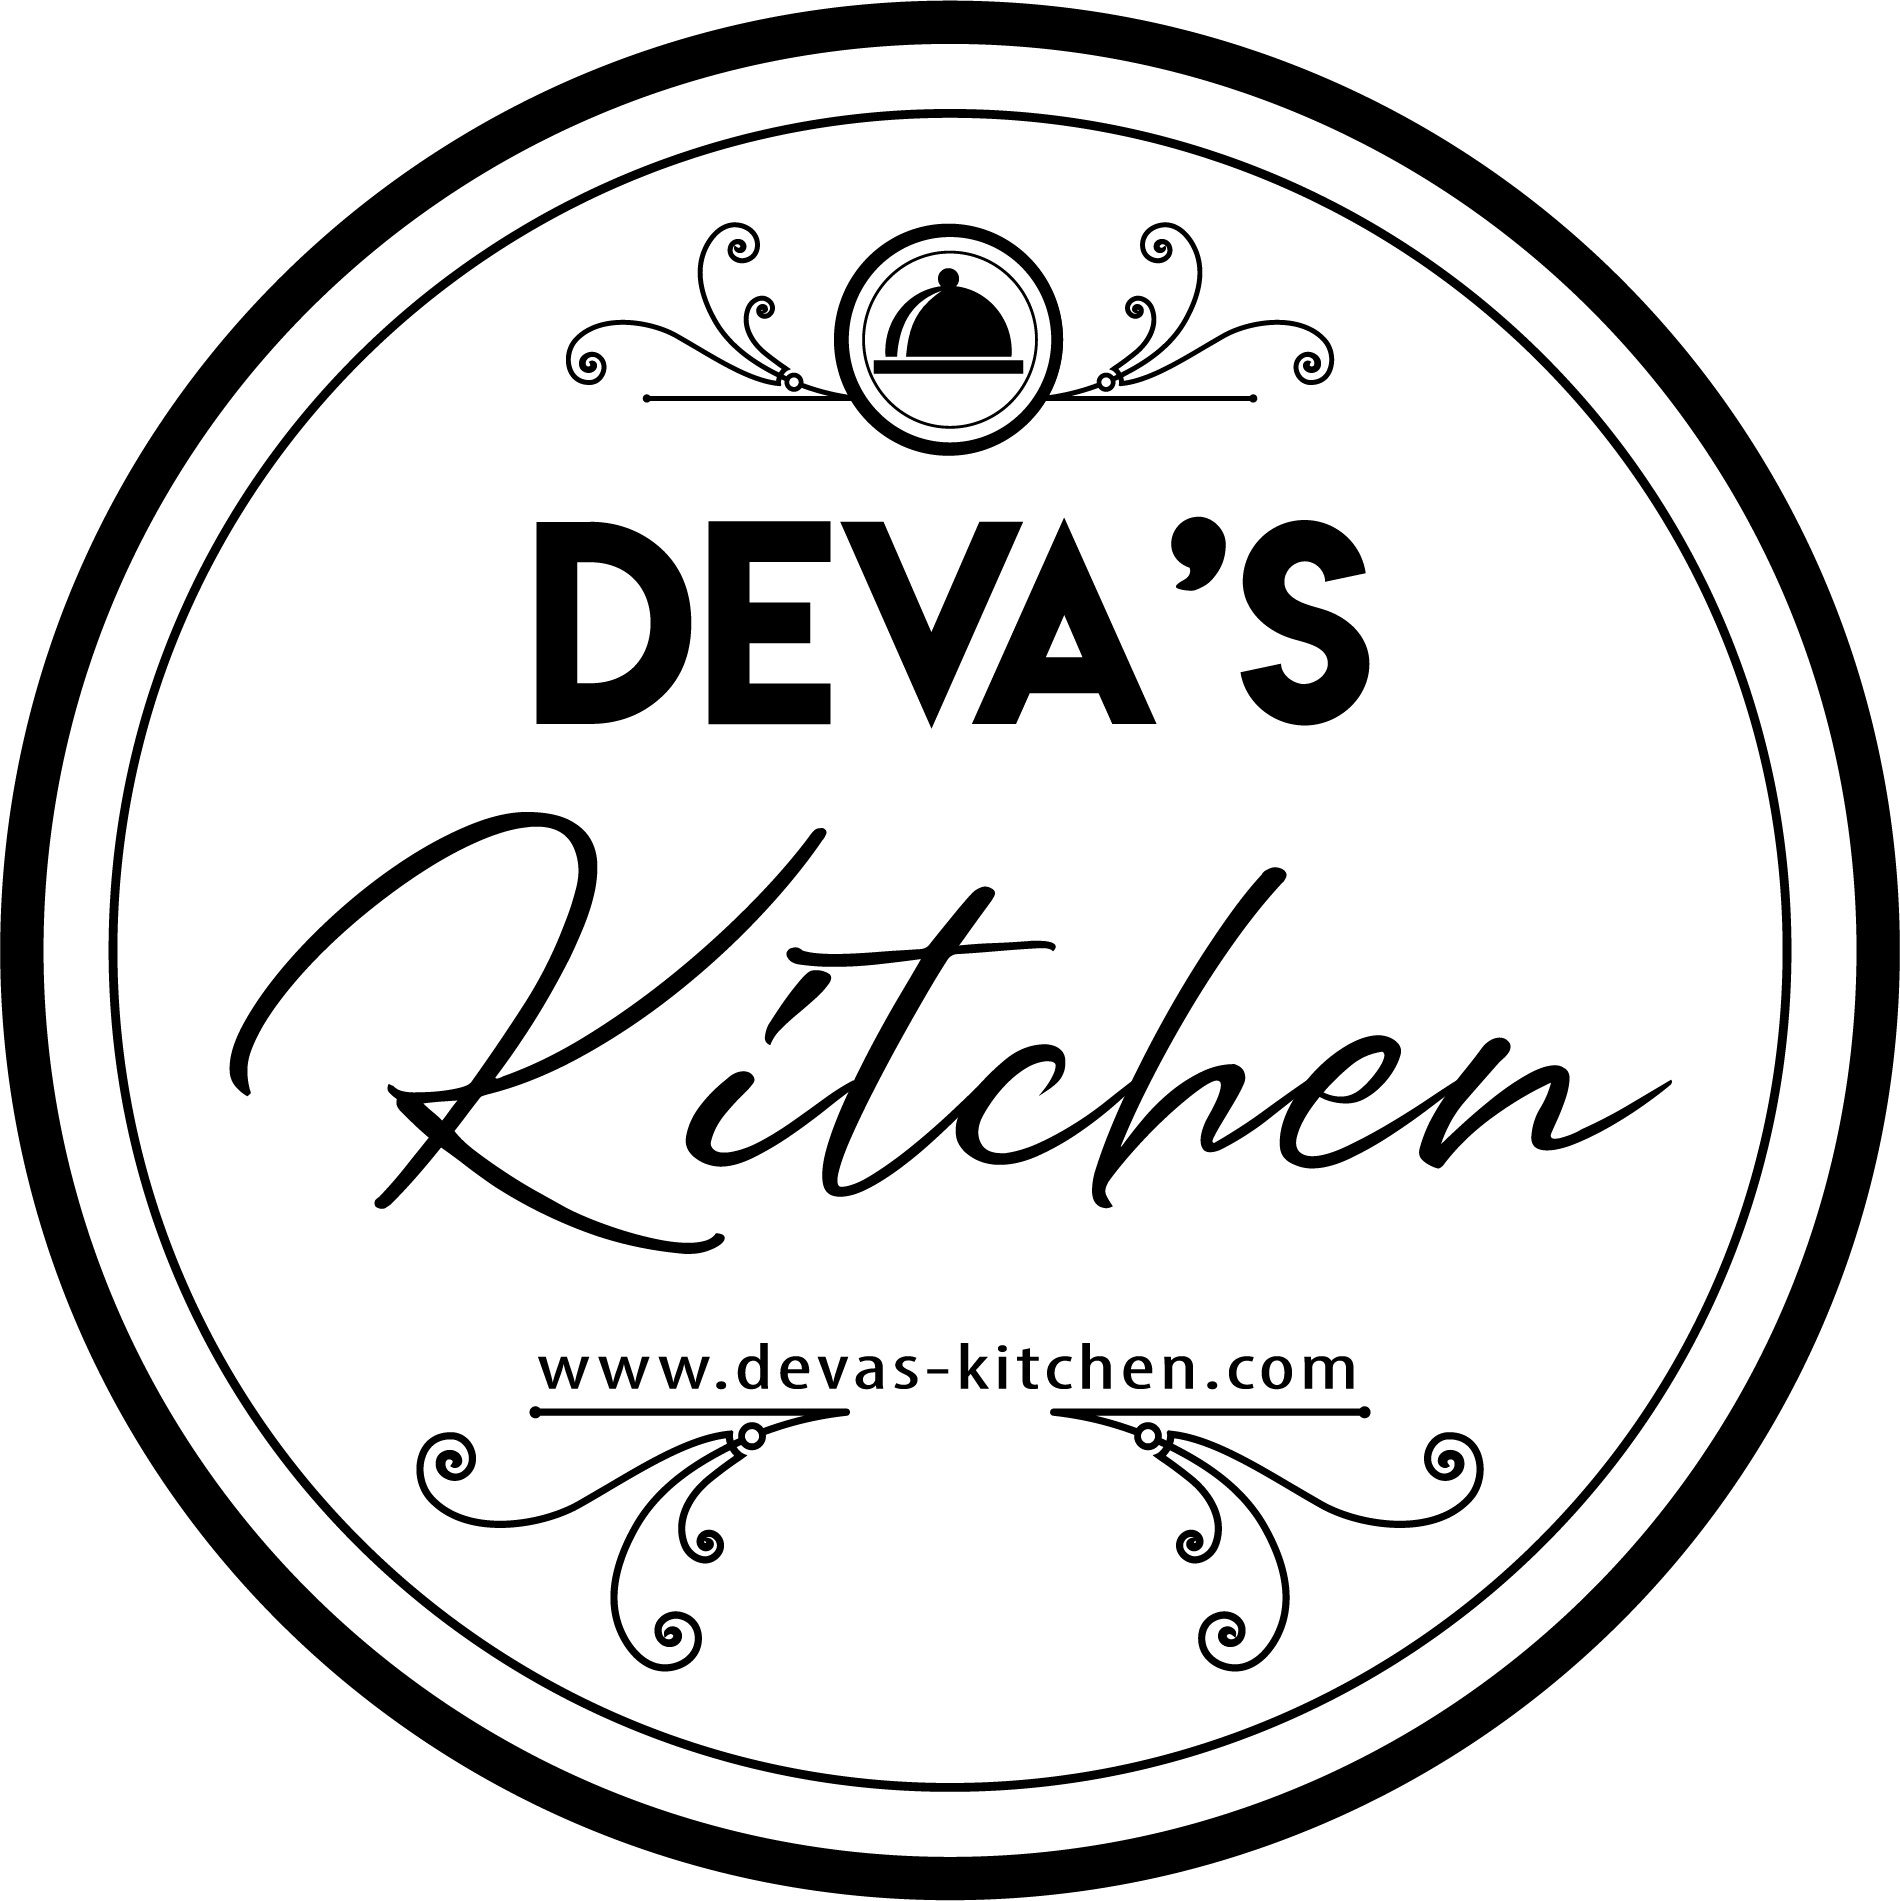 Deva's Kitchen